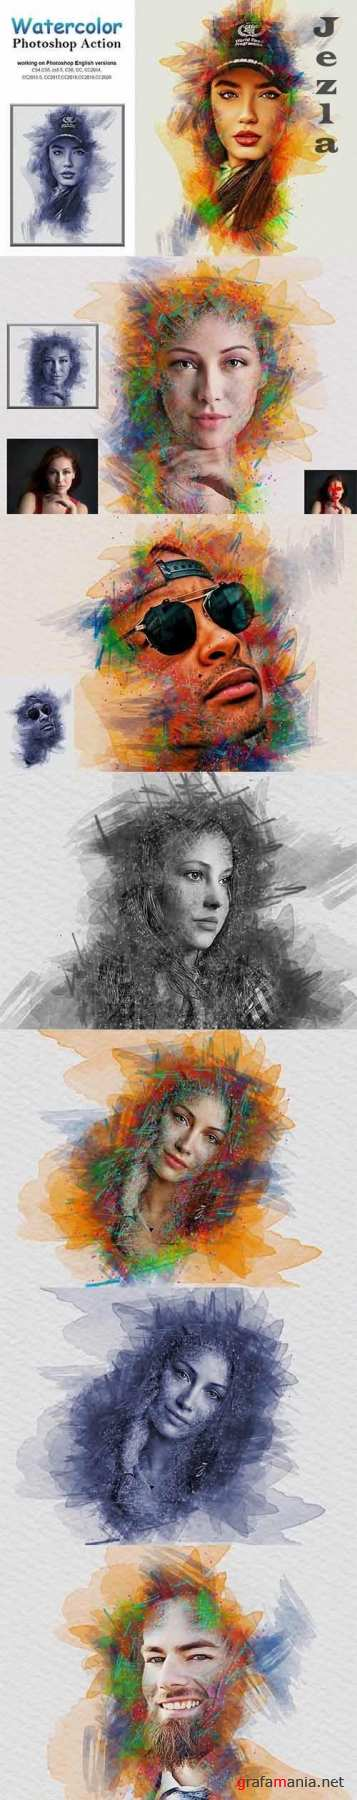 CreativeMarket - Watercolor Photoshop Action 5232780